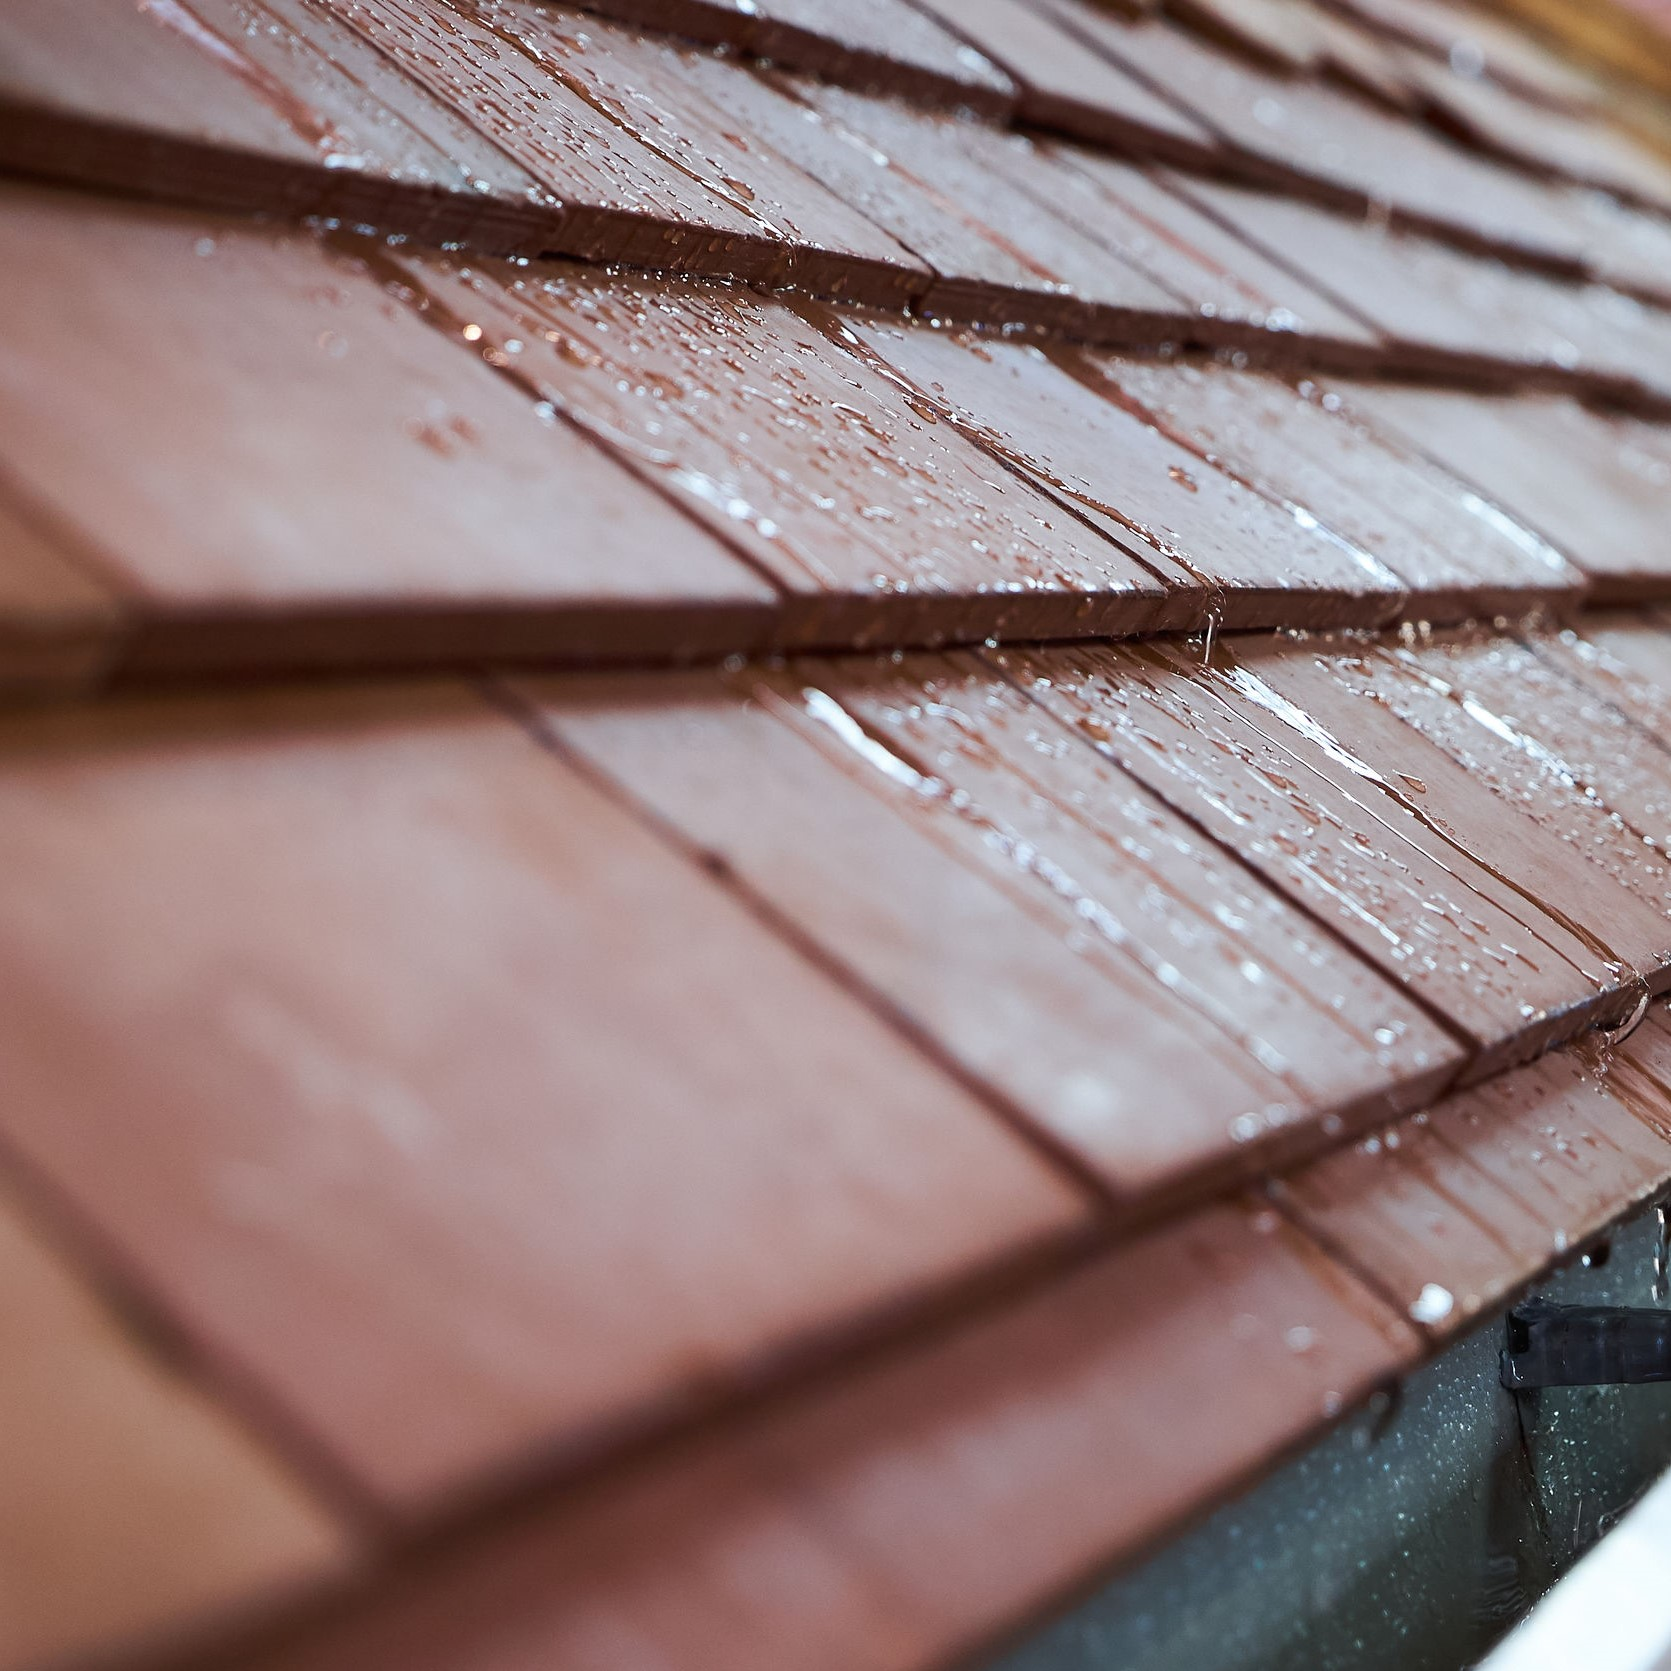 An up close view of a tile roof.